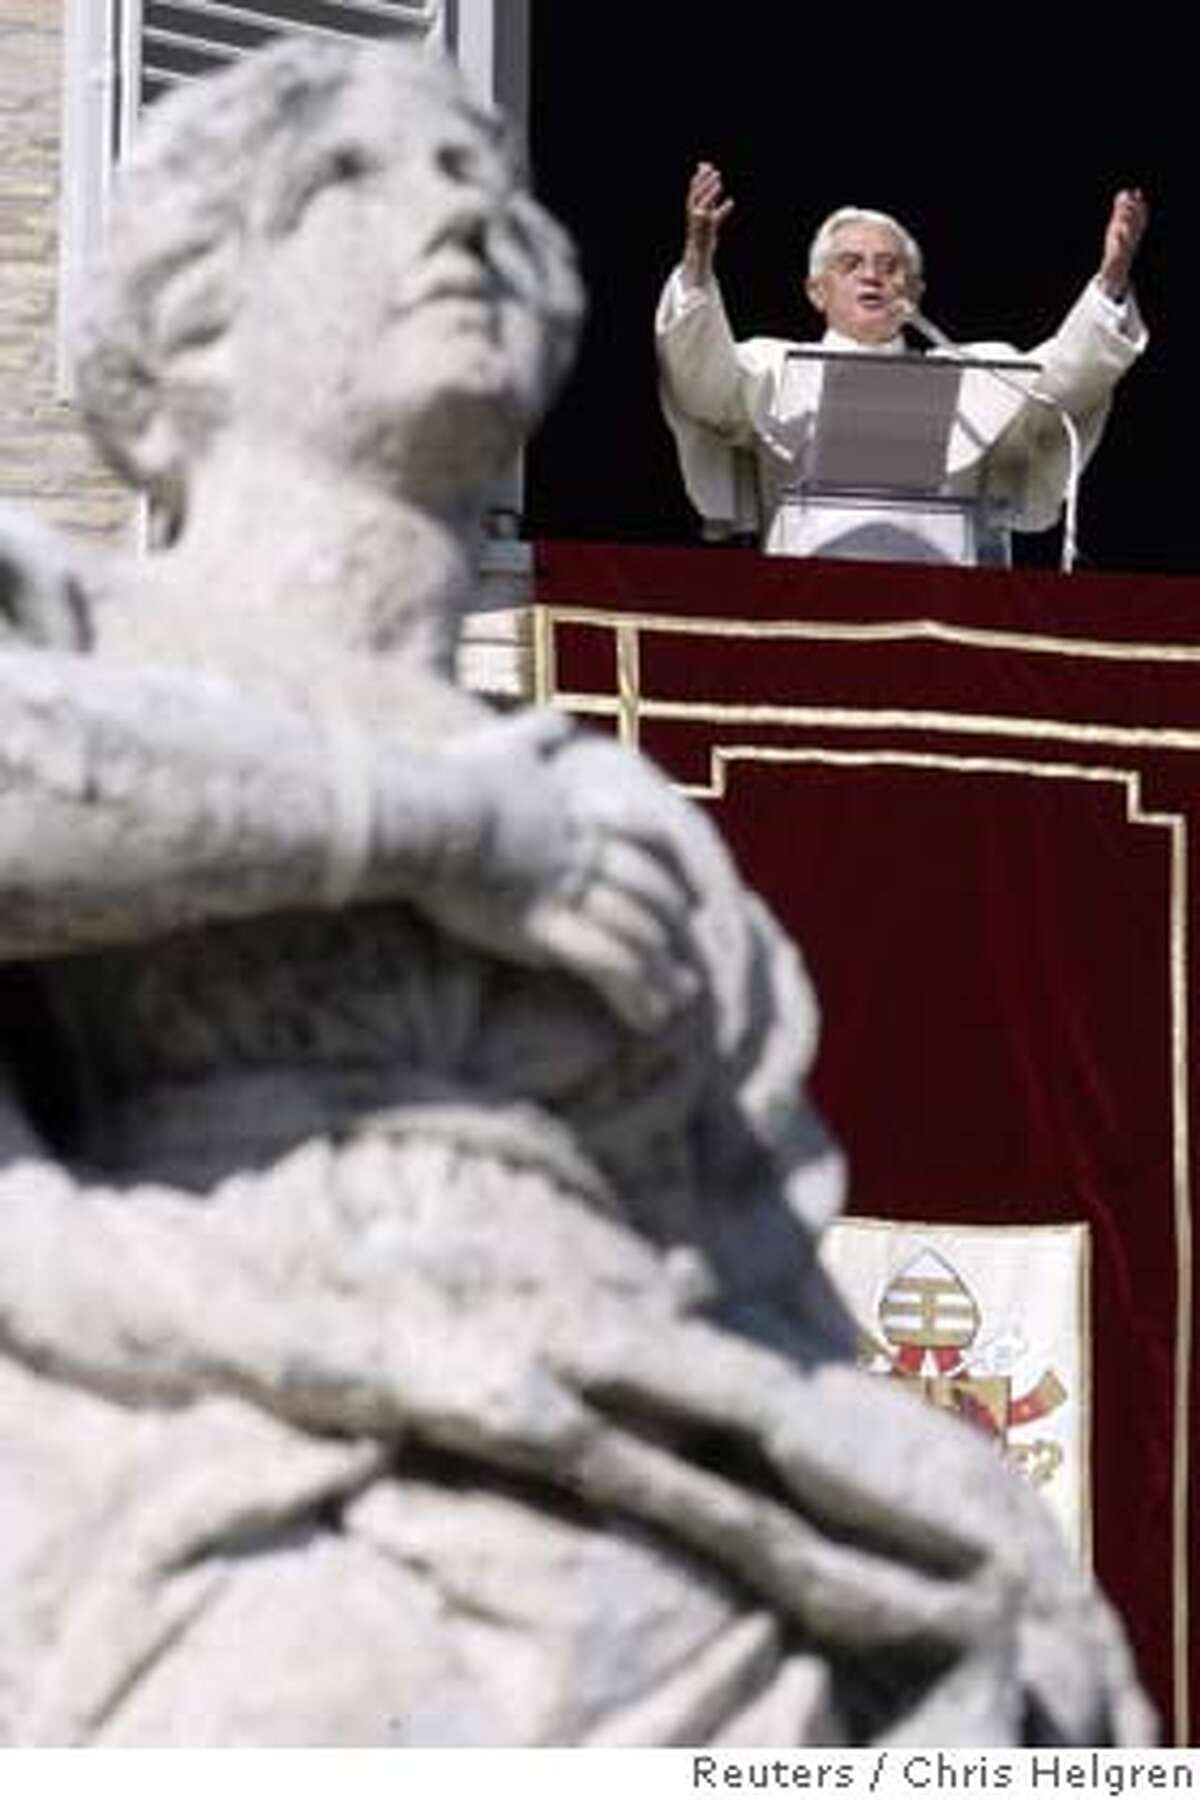 Pope Benedict XVI holds his weekly Angelus blessing from a window of his private apartments overlooking St. Peter's Square at the Vatican November 26, 2006. Pope Benedict will visit Istanbul's famous Blue Mosque on his trip to Turkey next week, the Vatican said on Sunday. REUTERS/Chris Helgren (VATICAN)